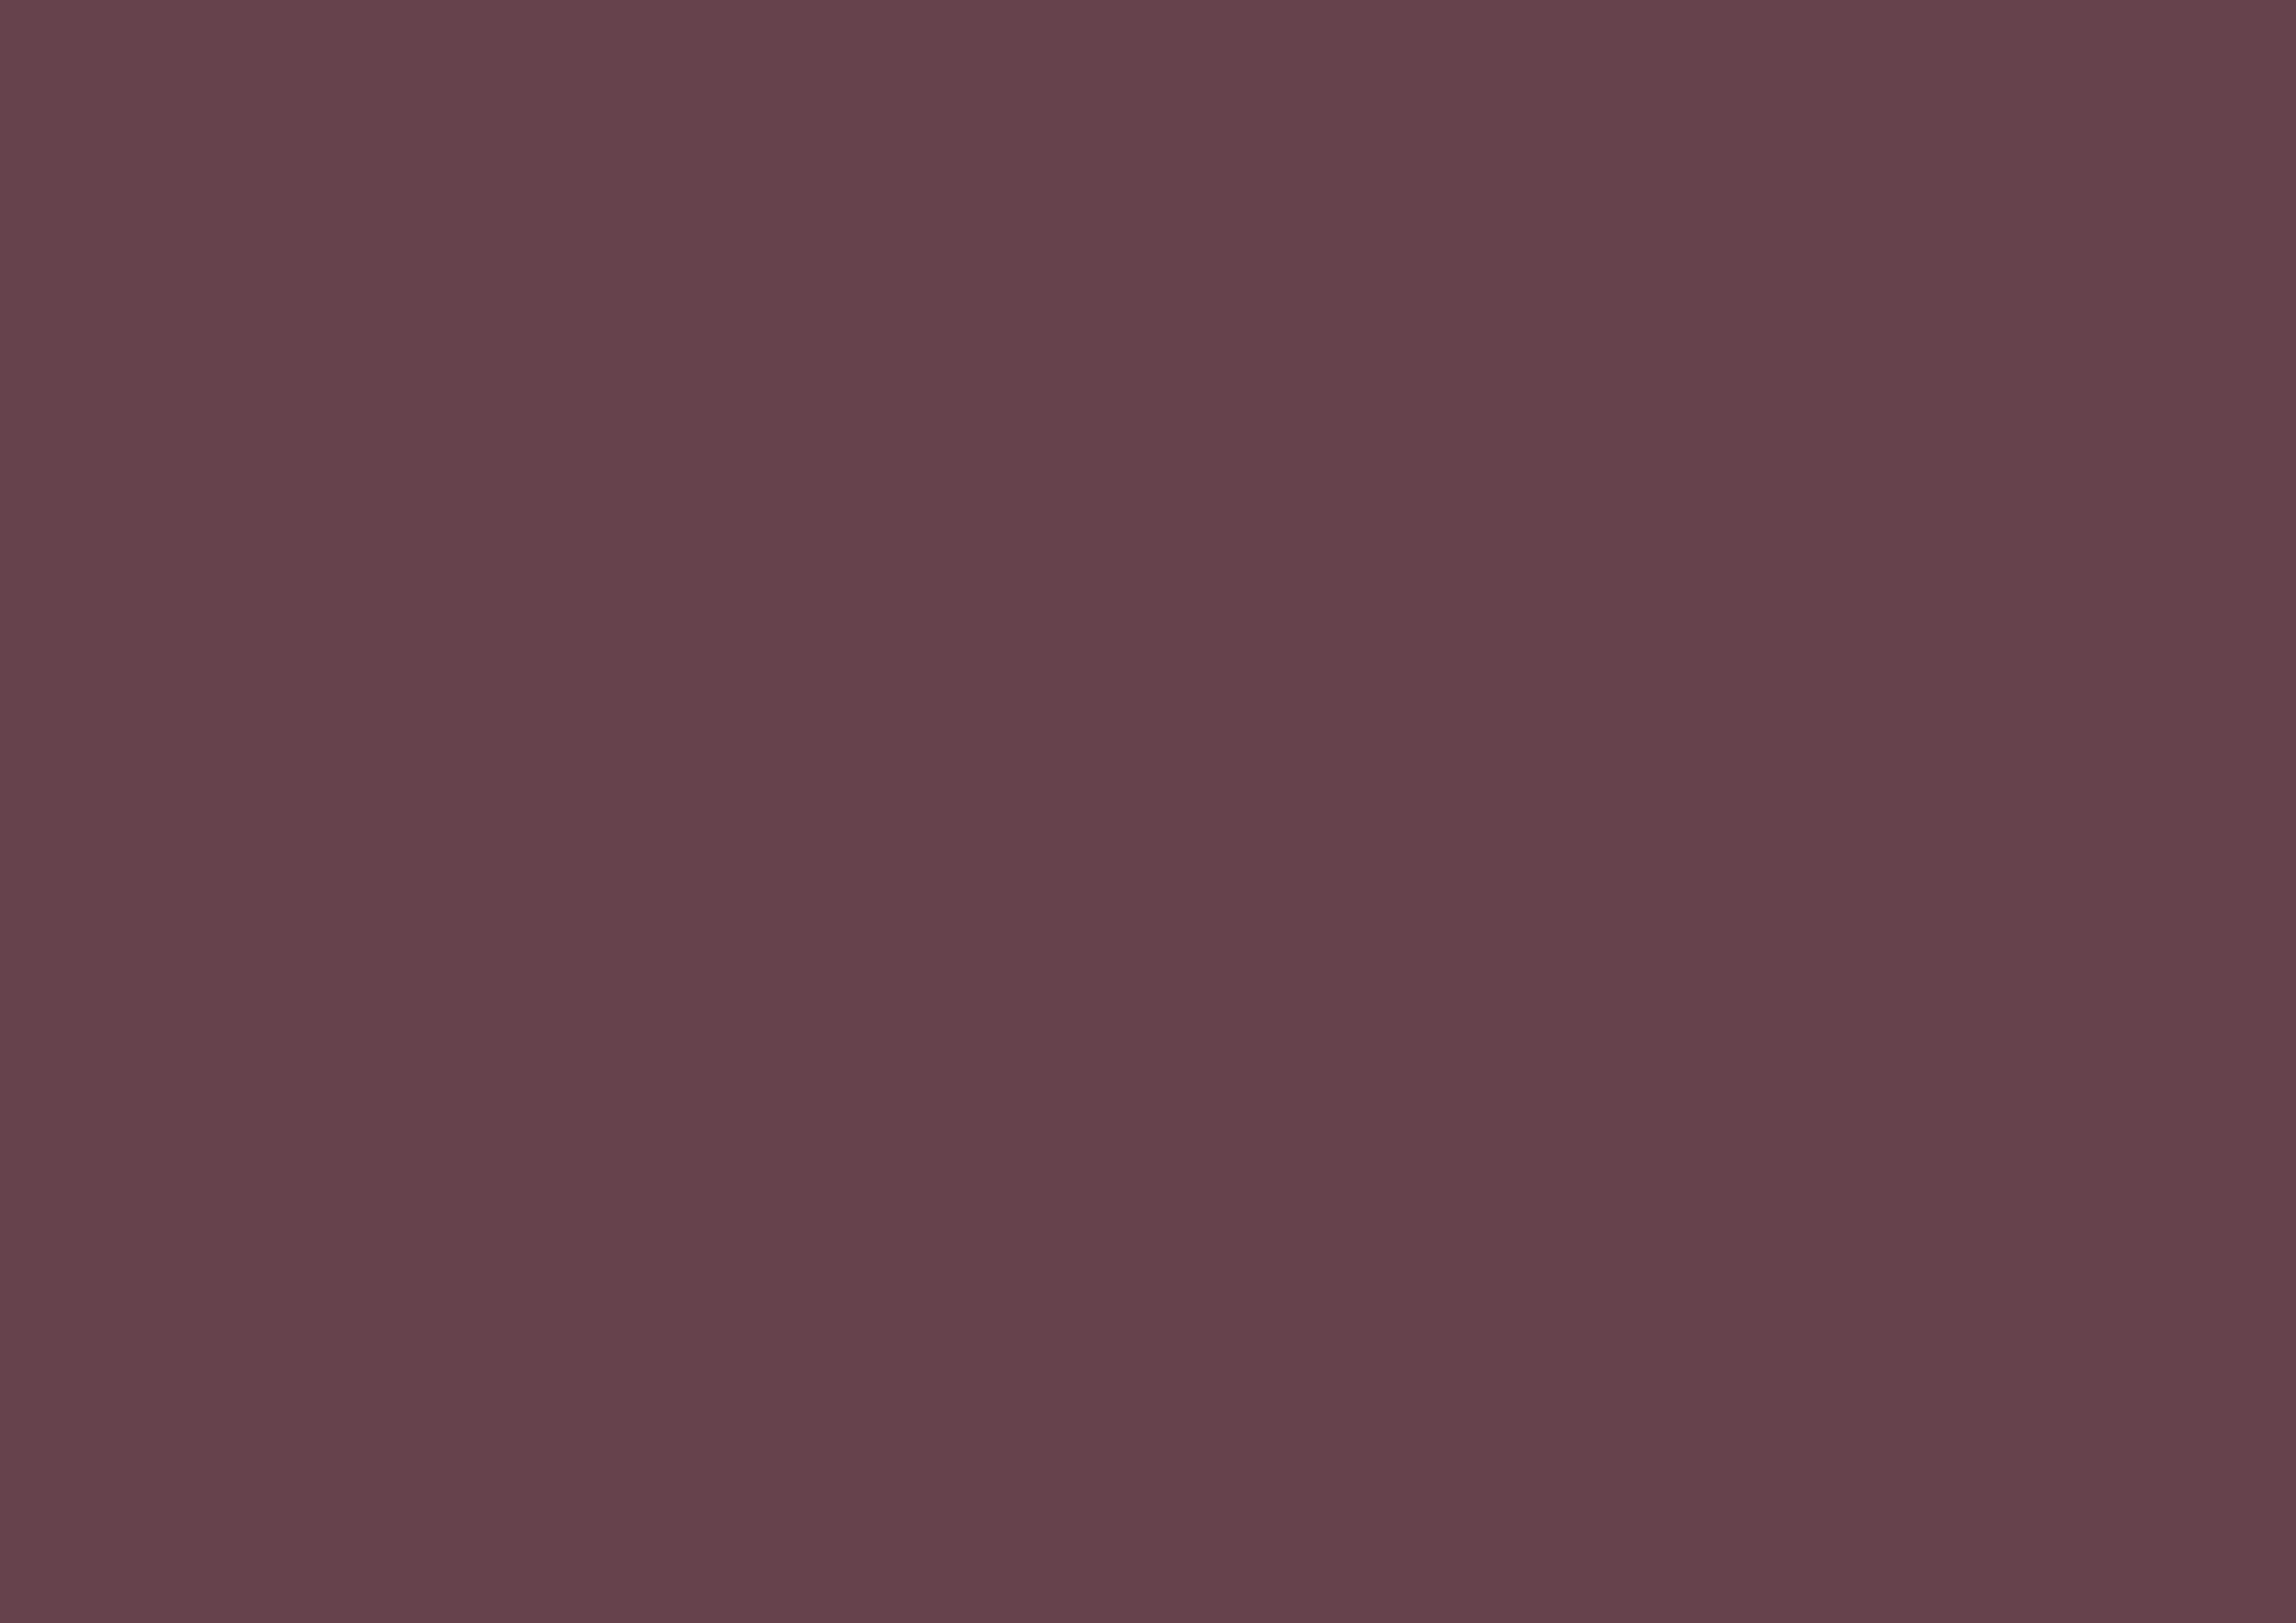 3508x2480 Deep Tuscan Red Solid Color Background